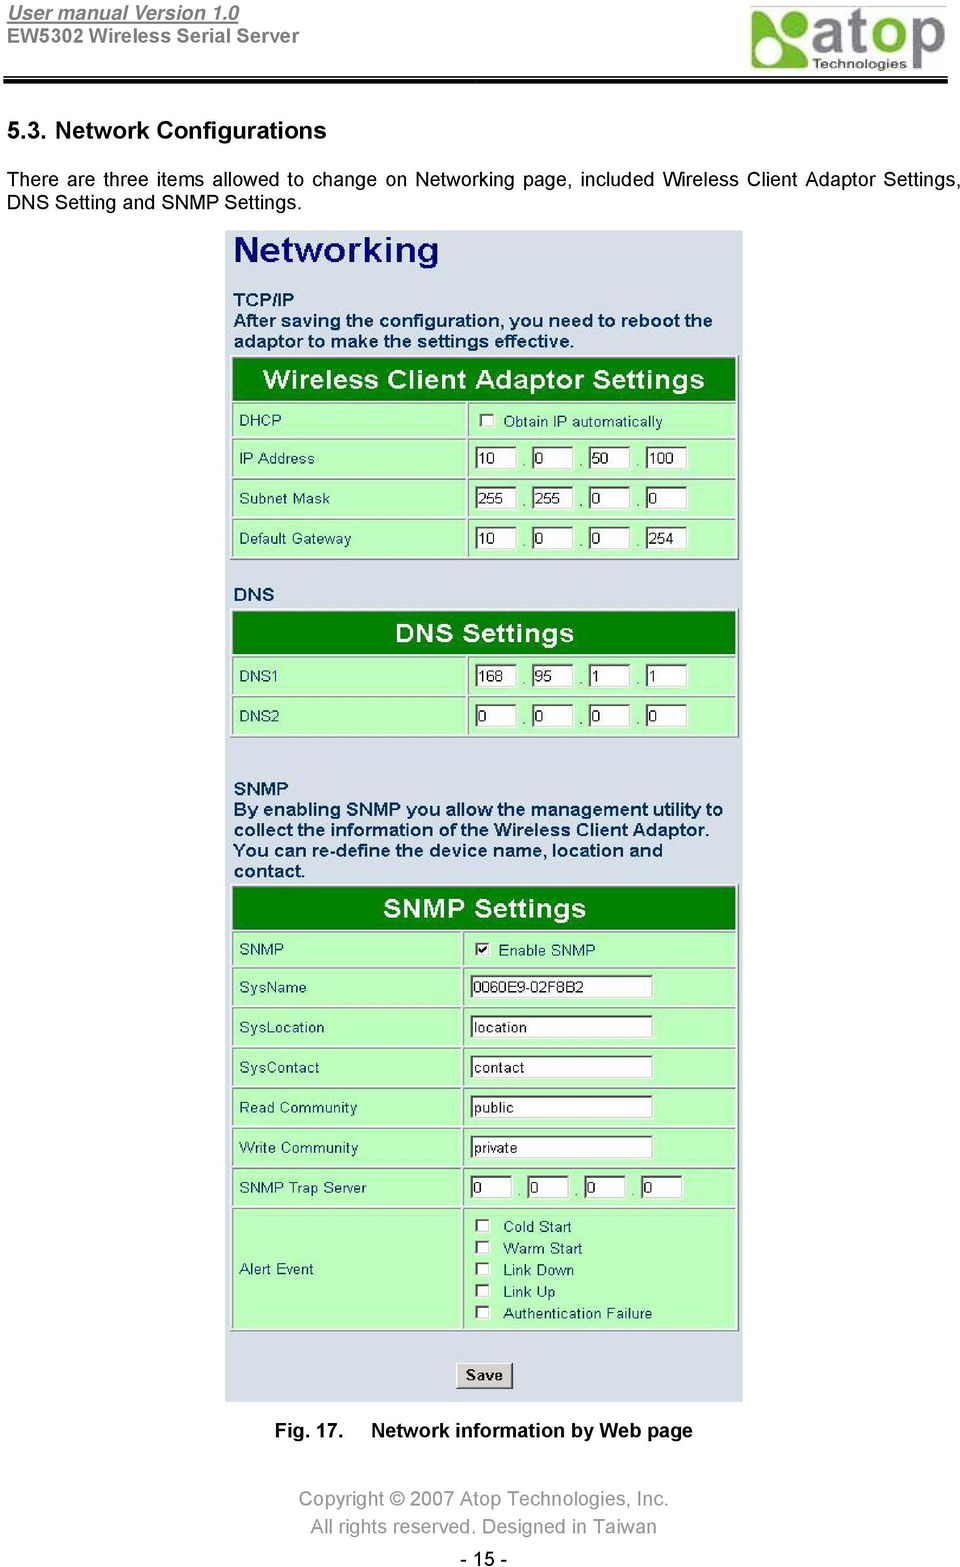 Wireless Client Adaptor Settings, DNS Setting and